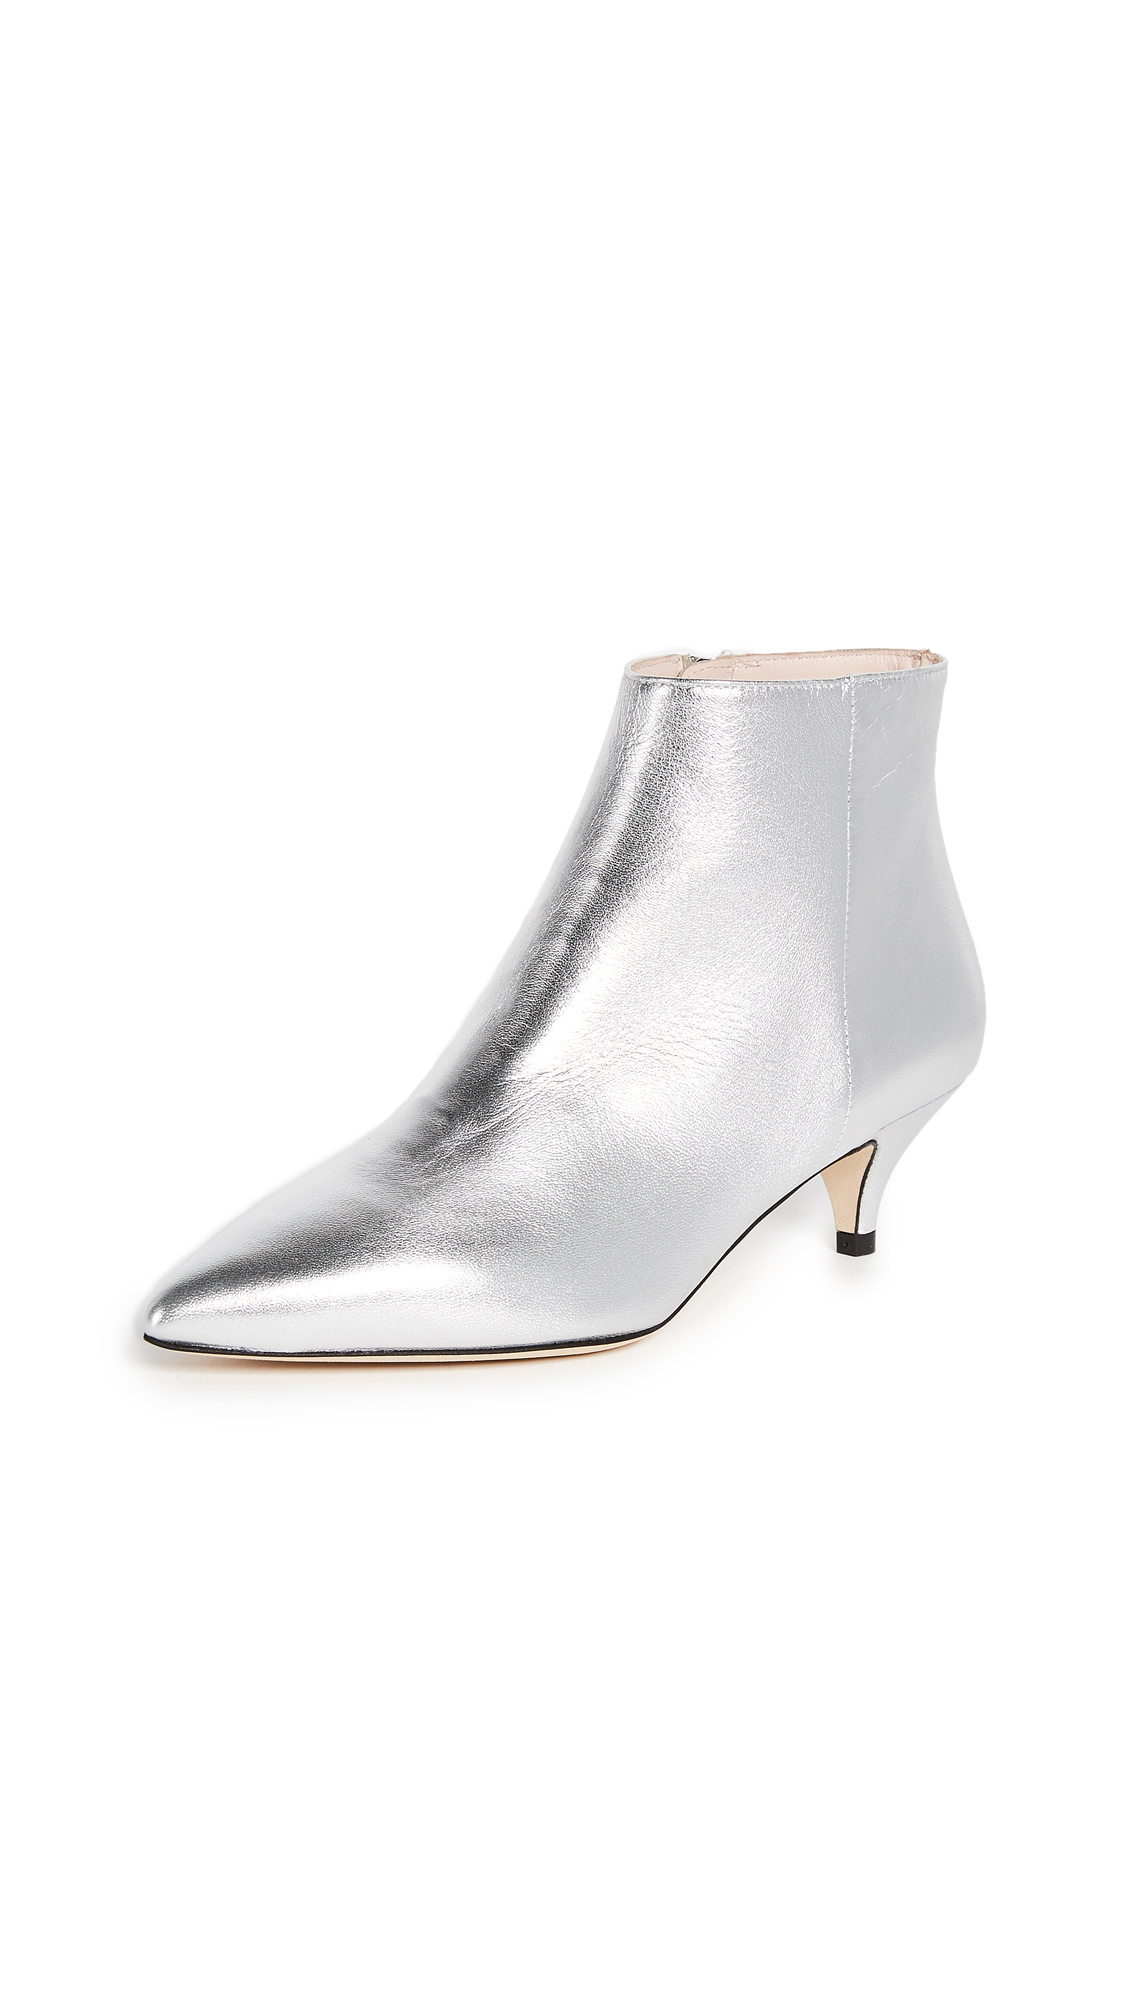 Kate Spade New York Olly Kitten Heel Ankle Booties - Silver